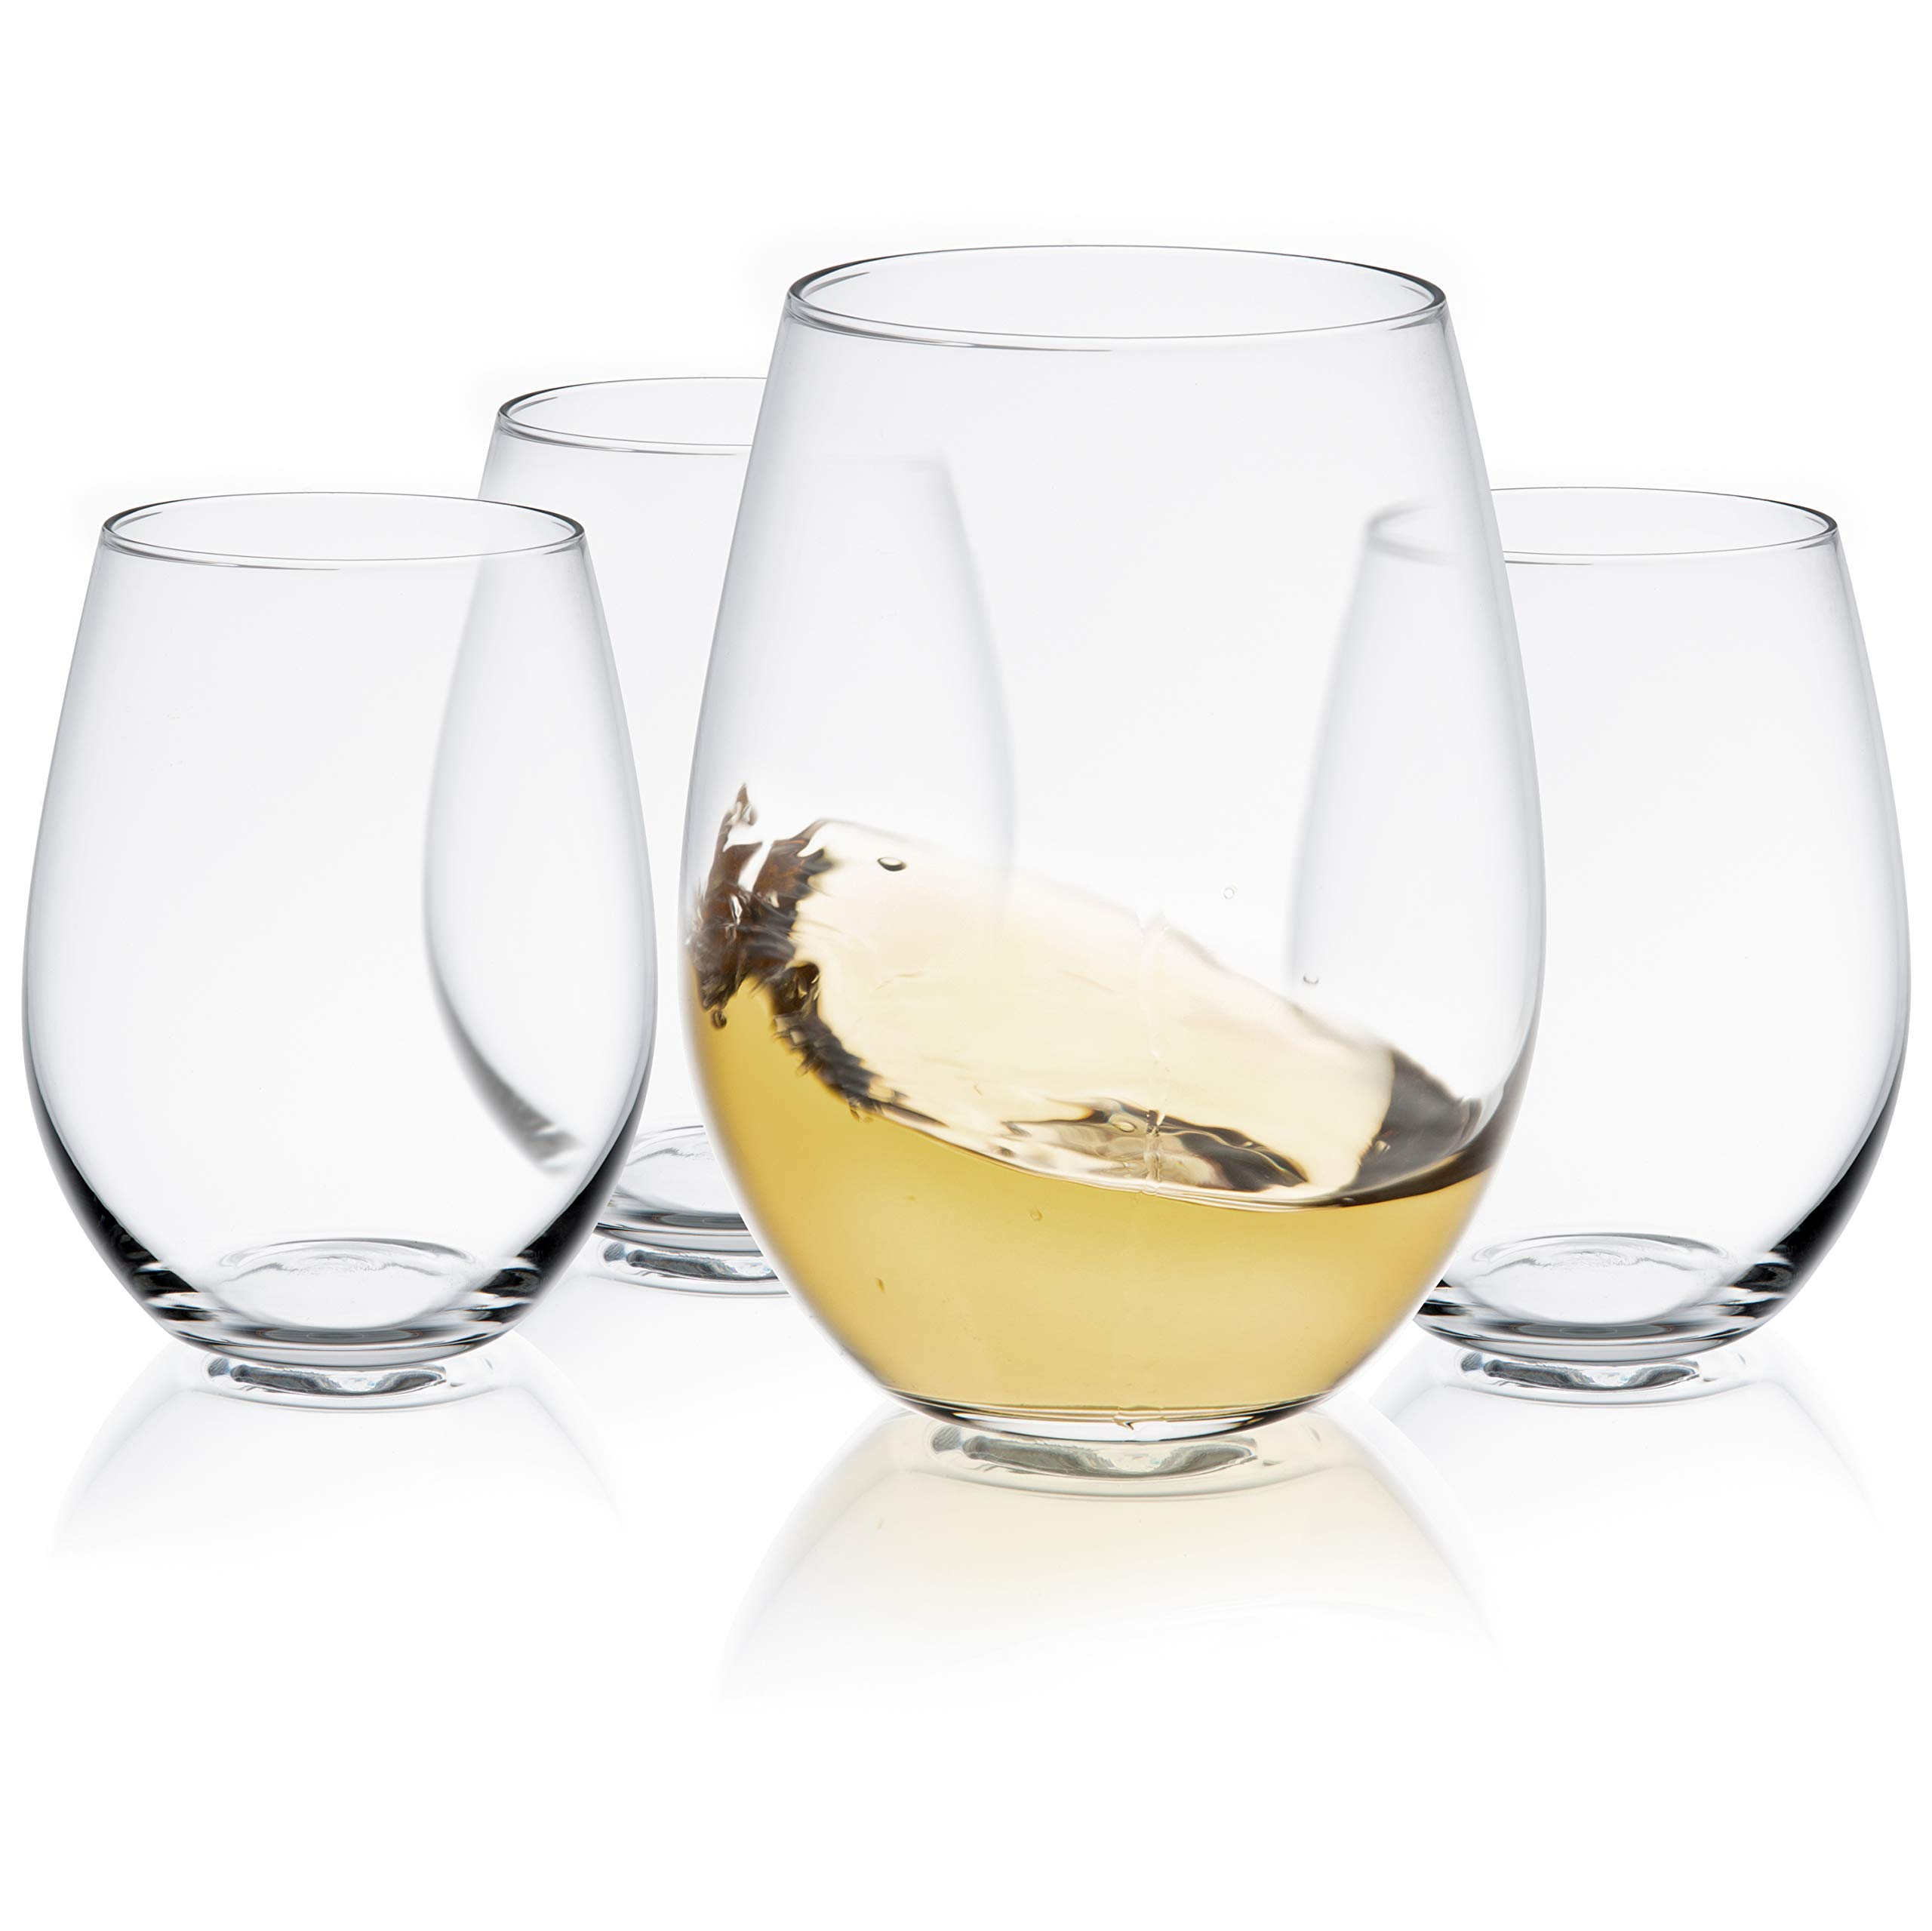 JoyJolt Spirits Stemless Wine Glasses for Red or White Wine (Set of 4)-19-Ounces by JoyJolt